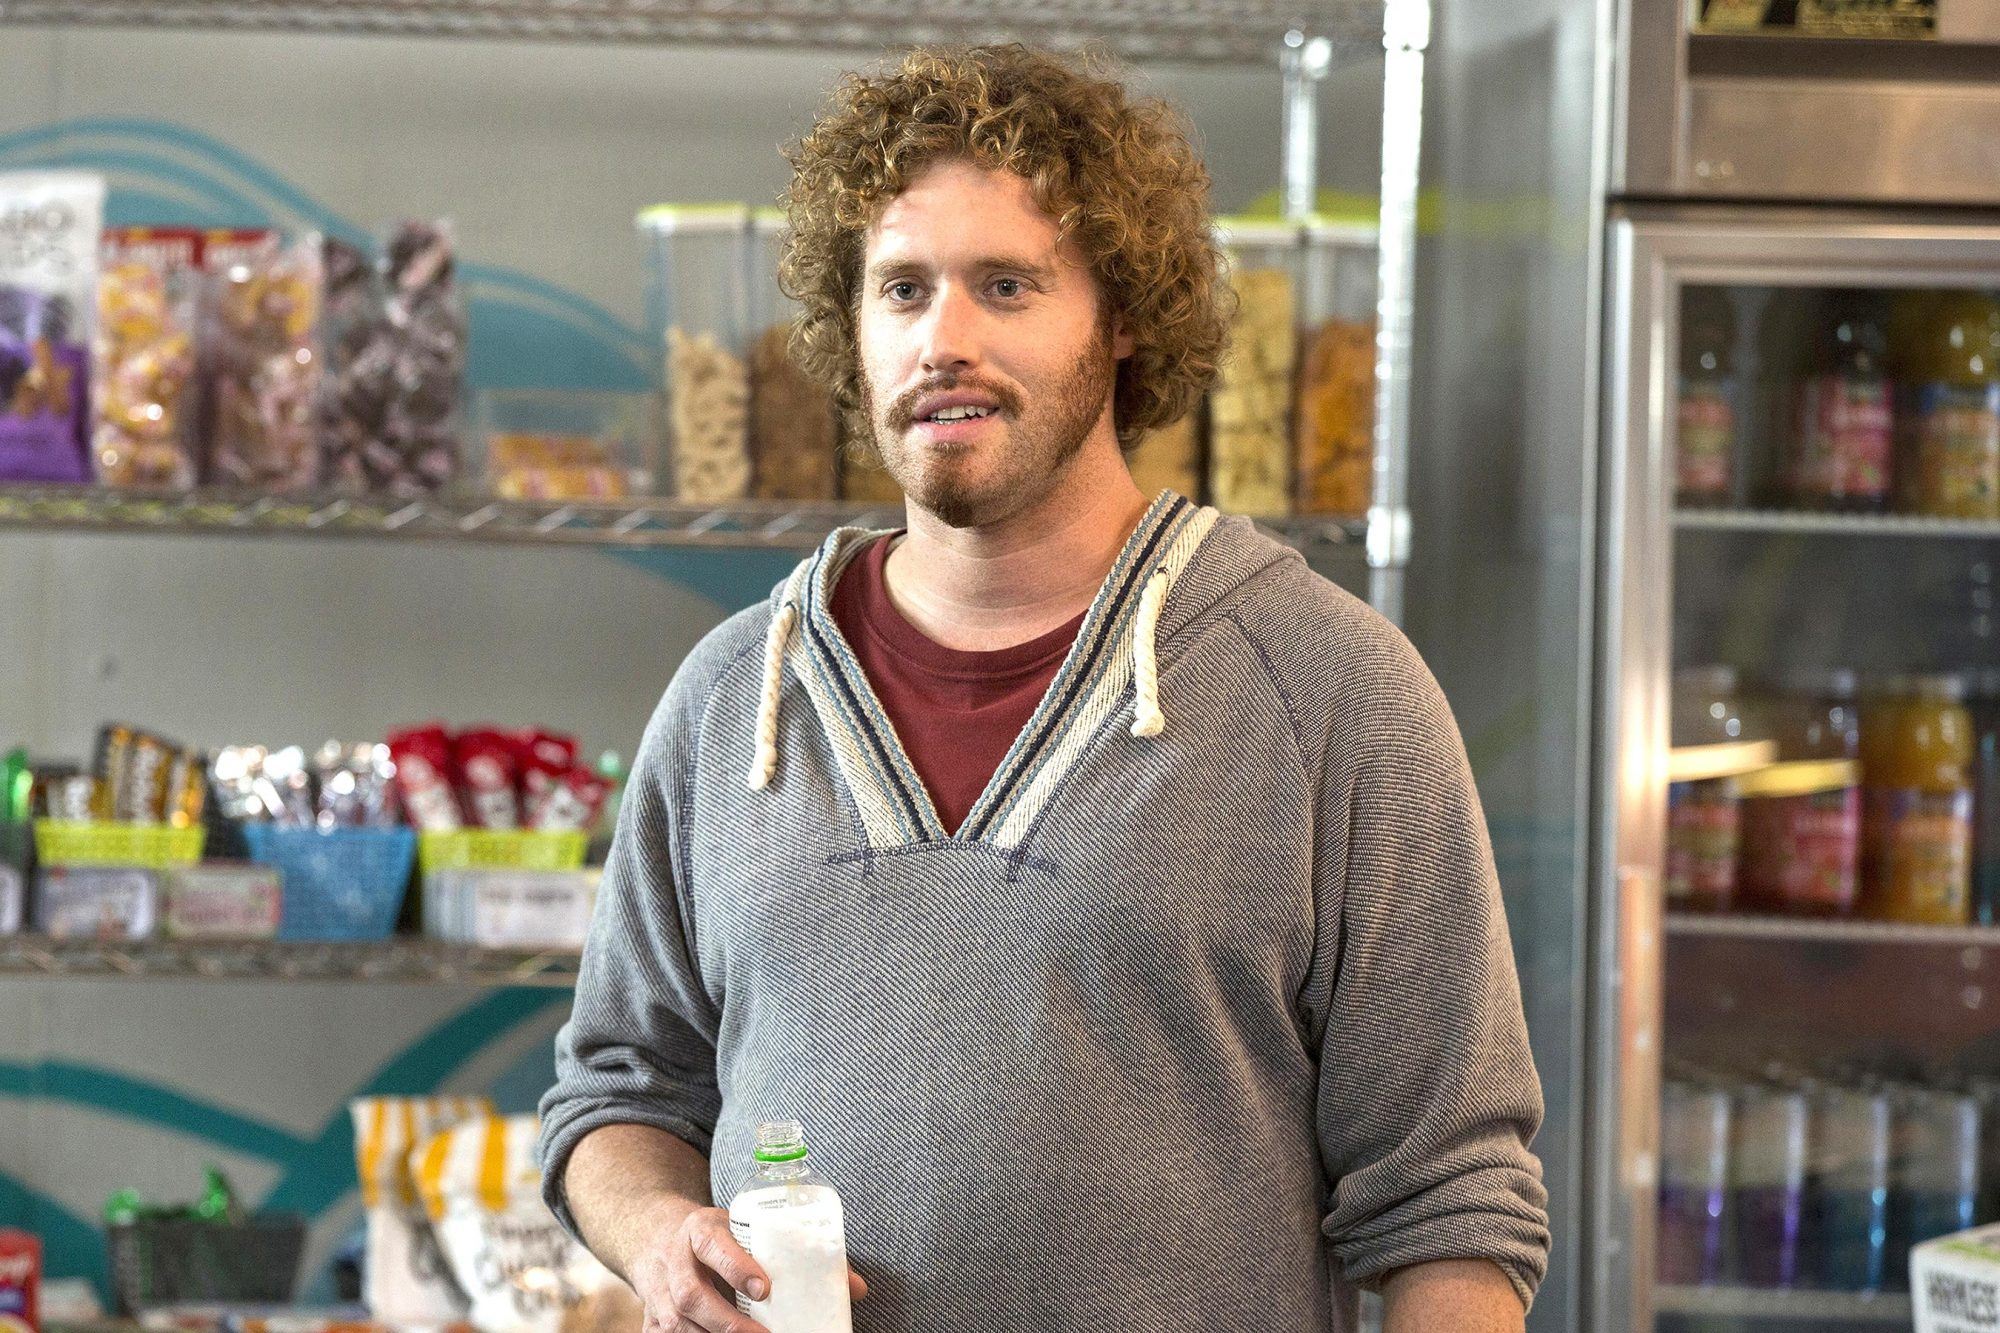 Silicon ValleySeason 3, Episode 2Air Date:  5/1/16Pictured: T.J. Miller.